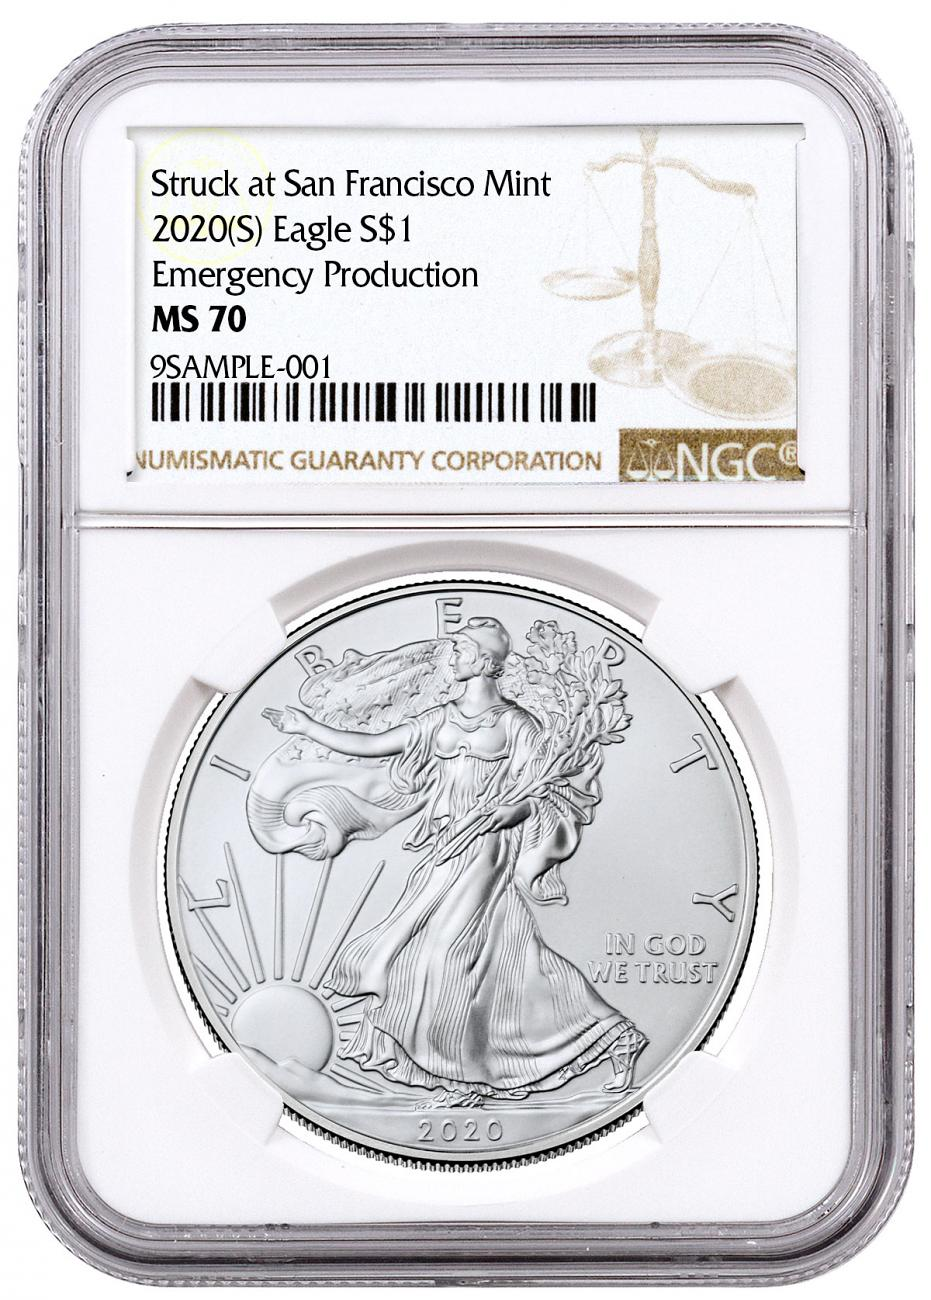 2020-(S) 1 oz American Silver Eagle Struck at San Francisco Mint Emergency Production NGC MS70 Brown Label